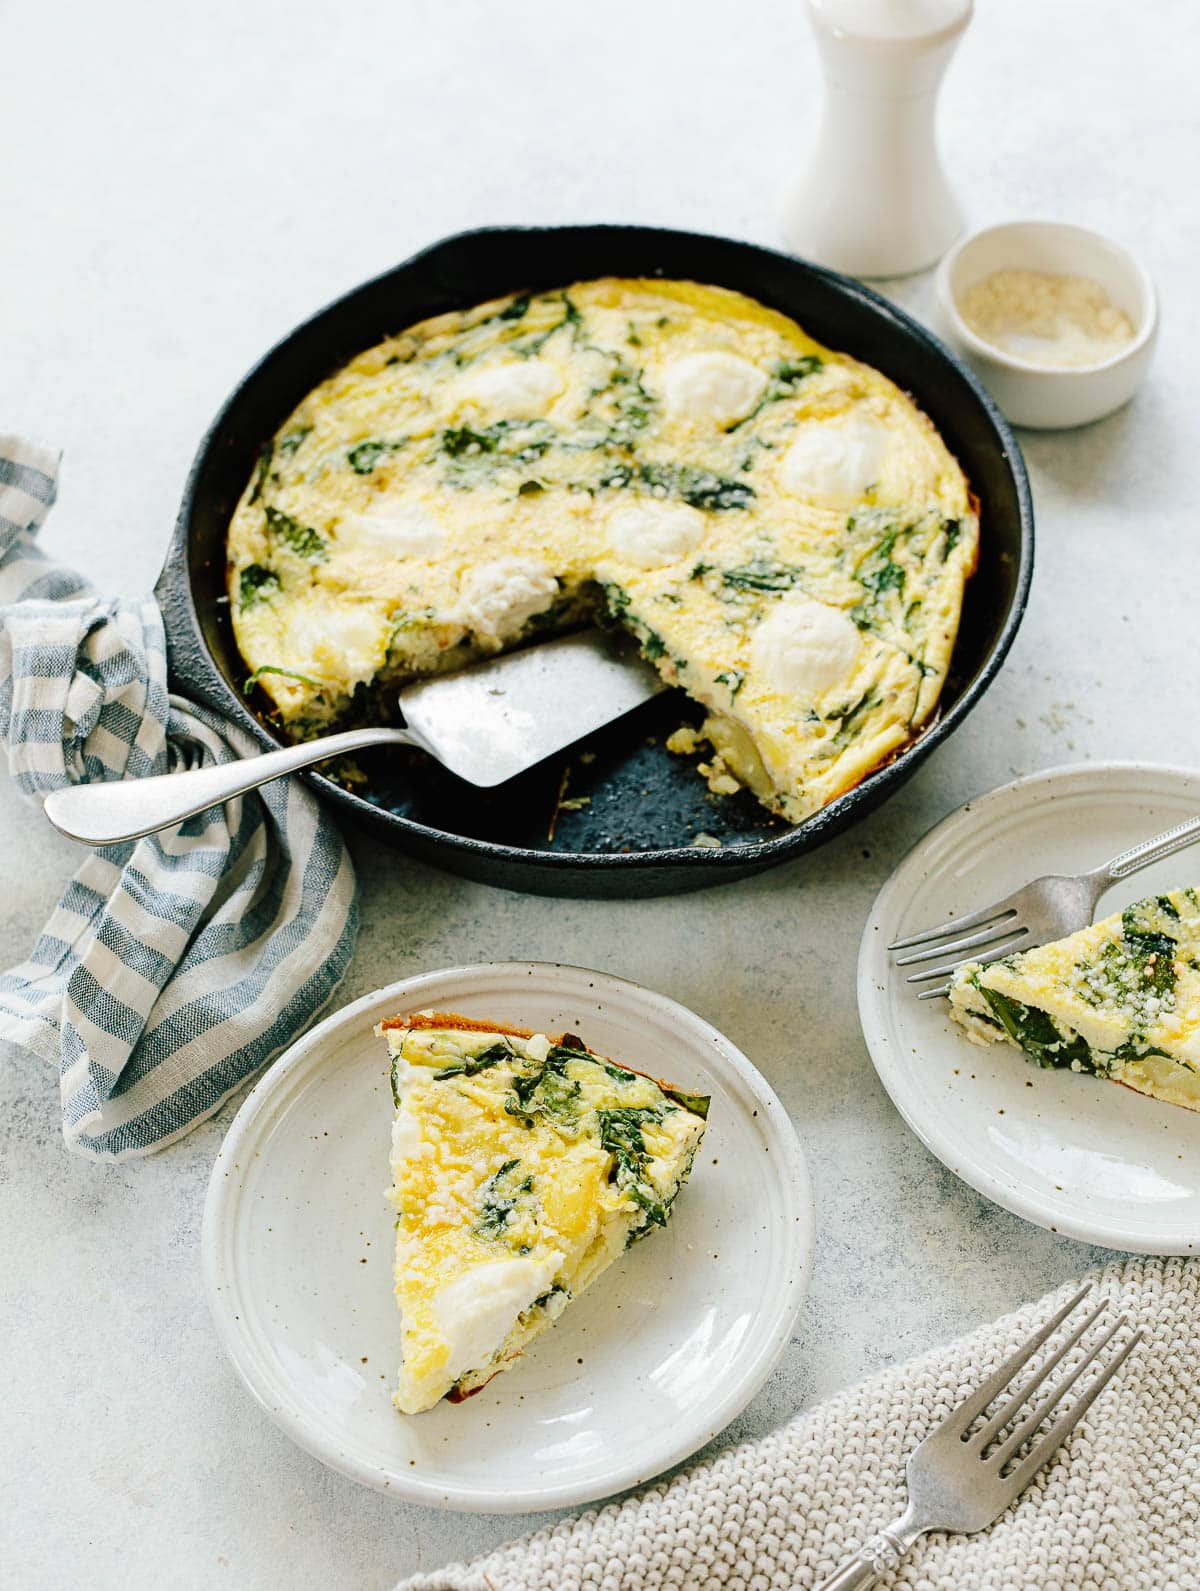 An egg and potato frittata with spinach and ricotta cheese baked in a black cast iron skillet.